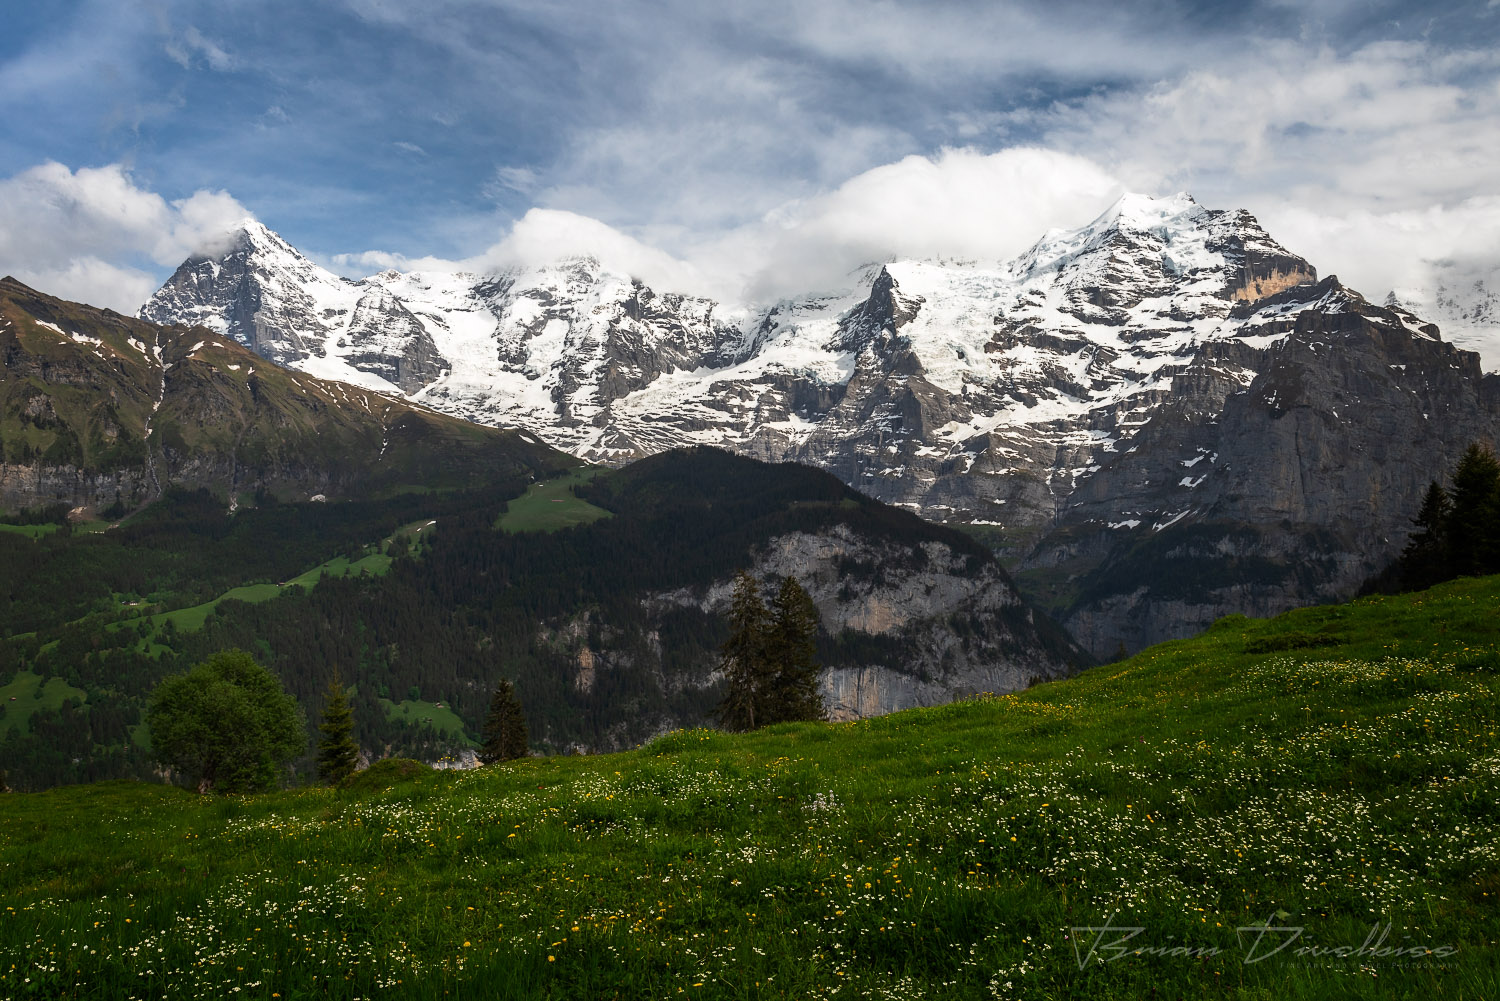 Eiger, Monch, and Jungfrau peaks from path to Murren, Switzerland.